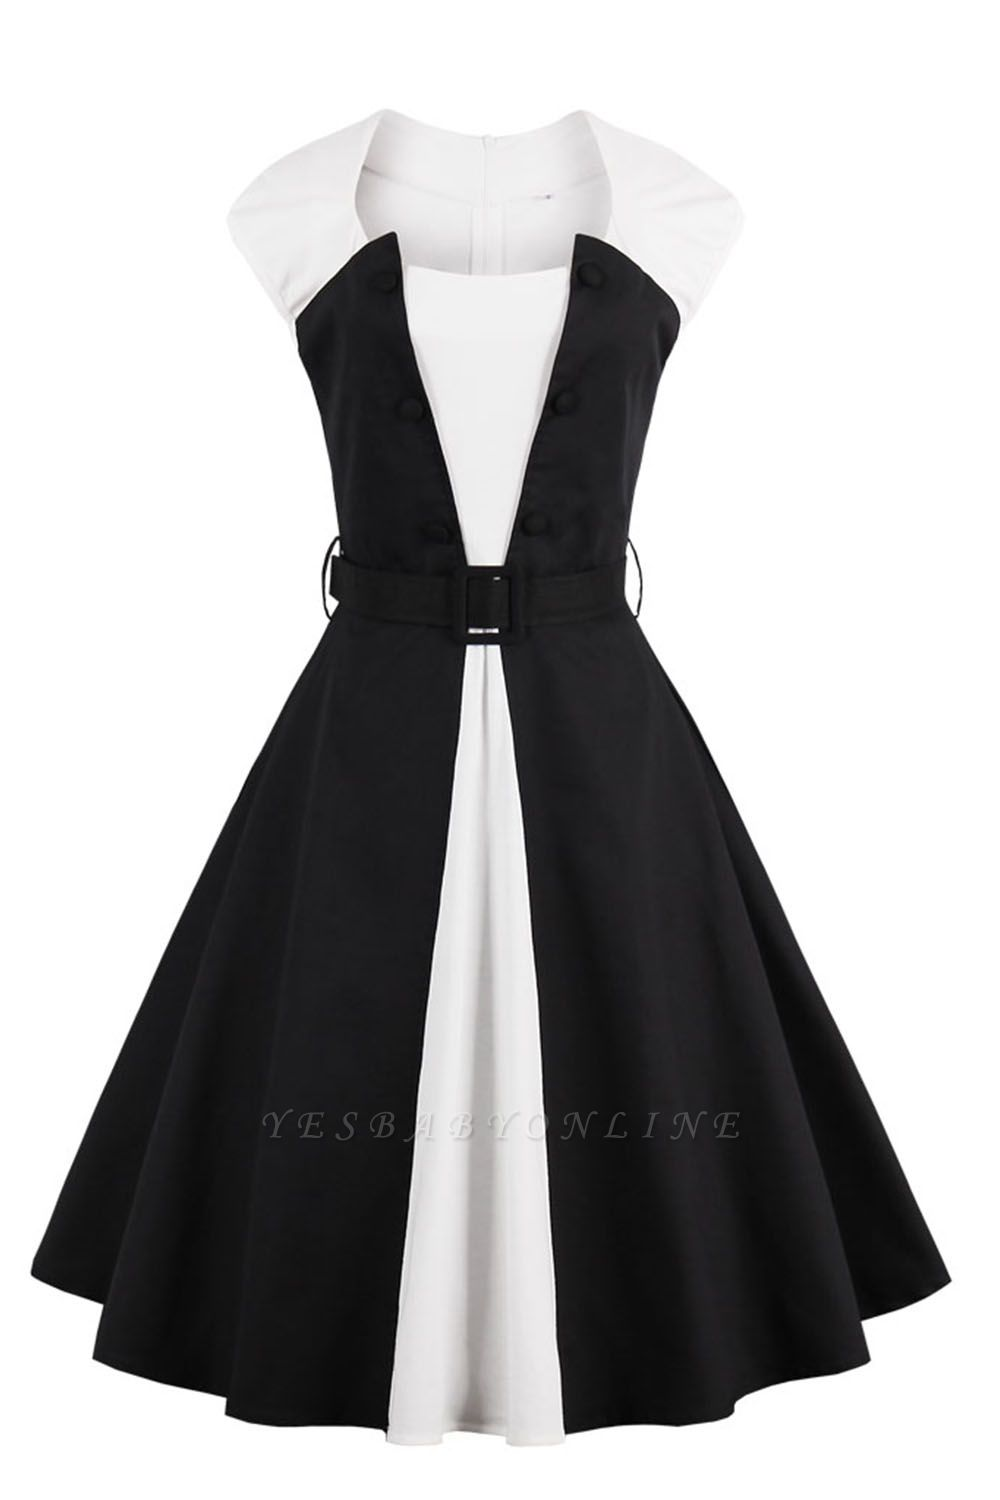 1950S Belted White and Black Patchwork Swing Dress